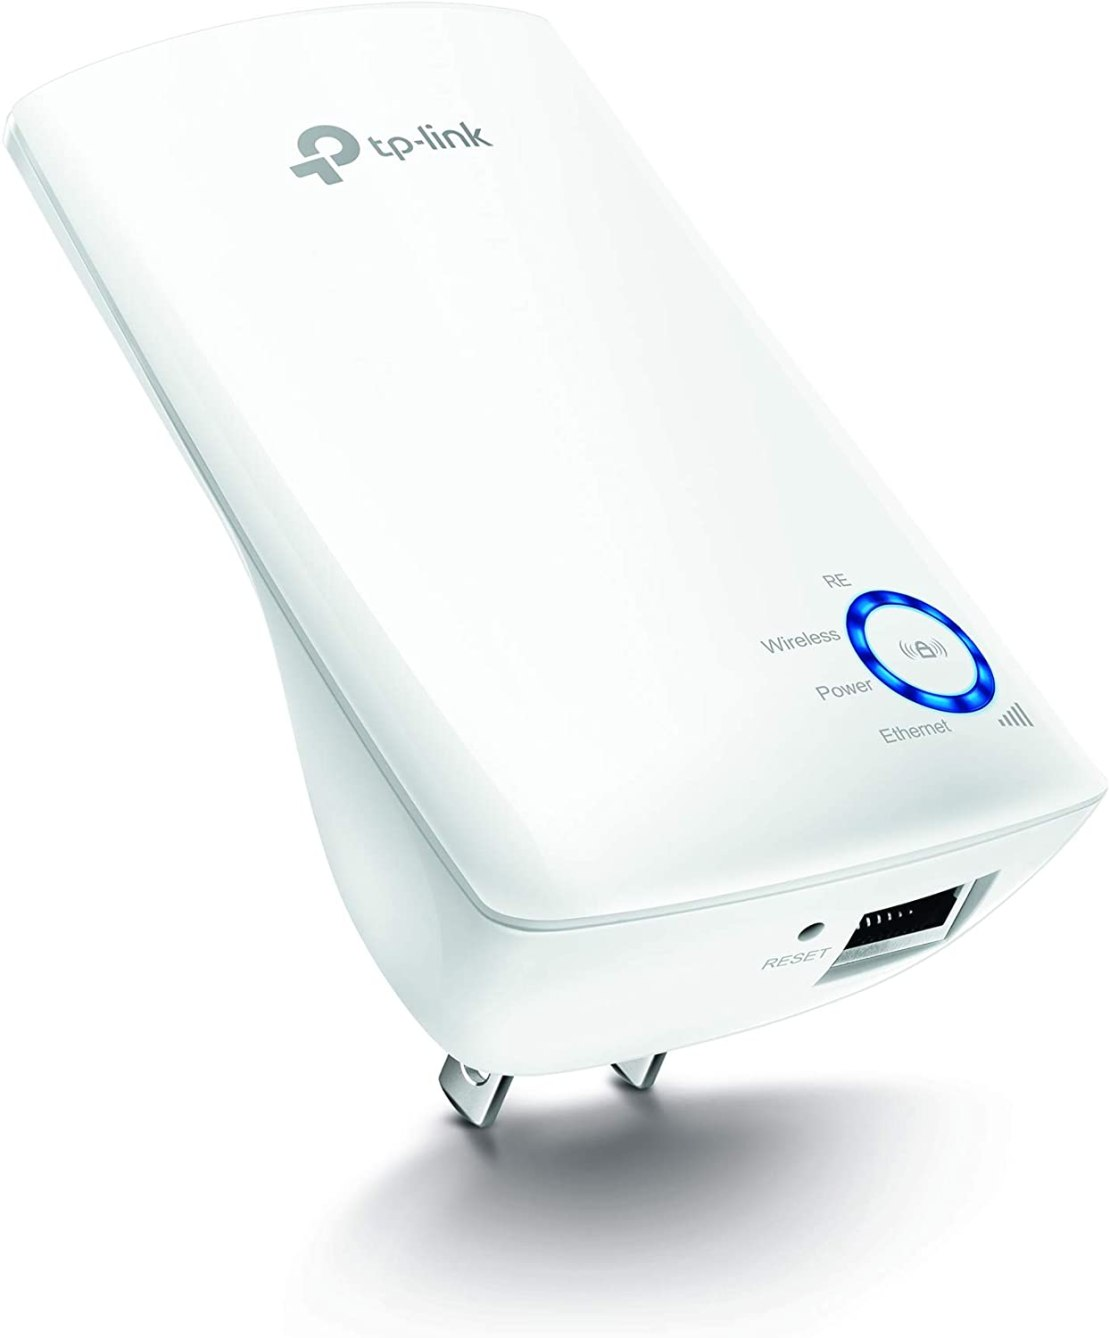 TP-LINK TL-WA850RE, repetidor de Wi-fi inalámbrico, 300Mbps, tipo plug and play con puerto Ethernet